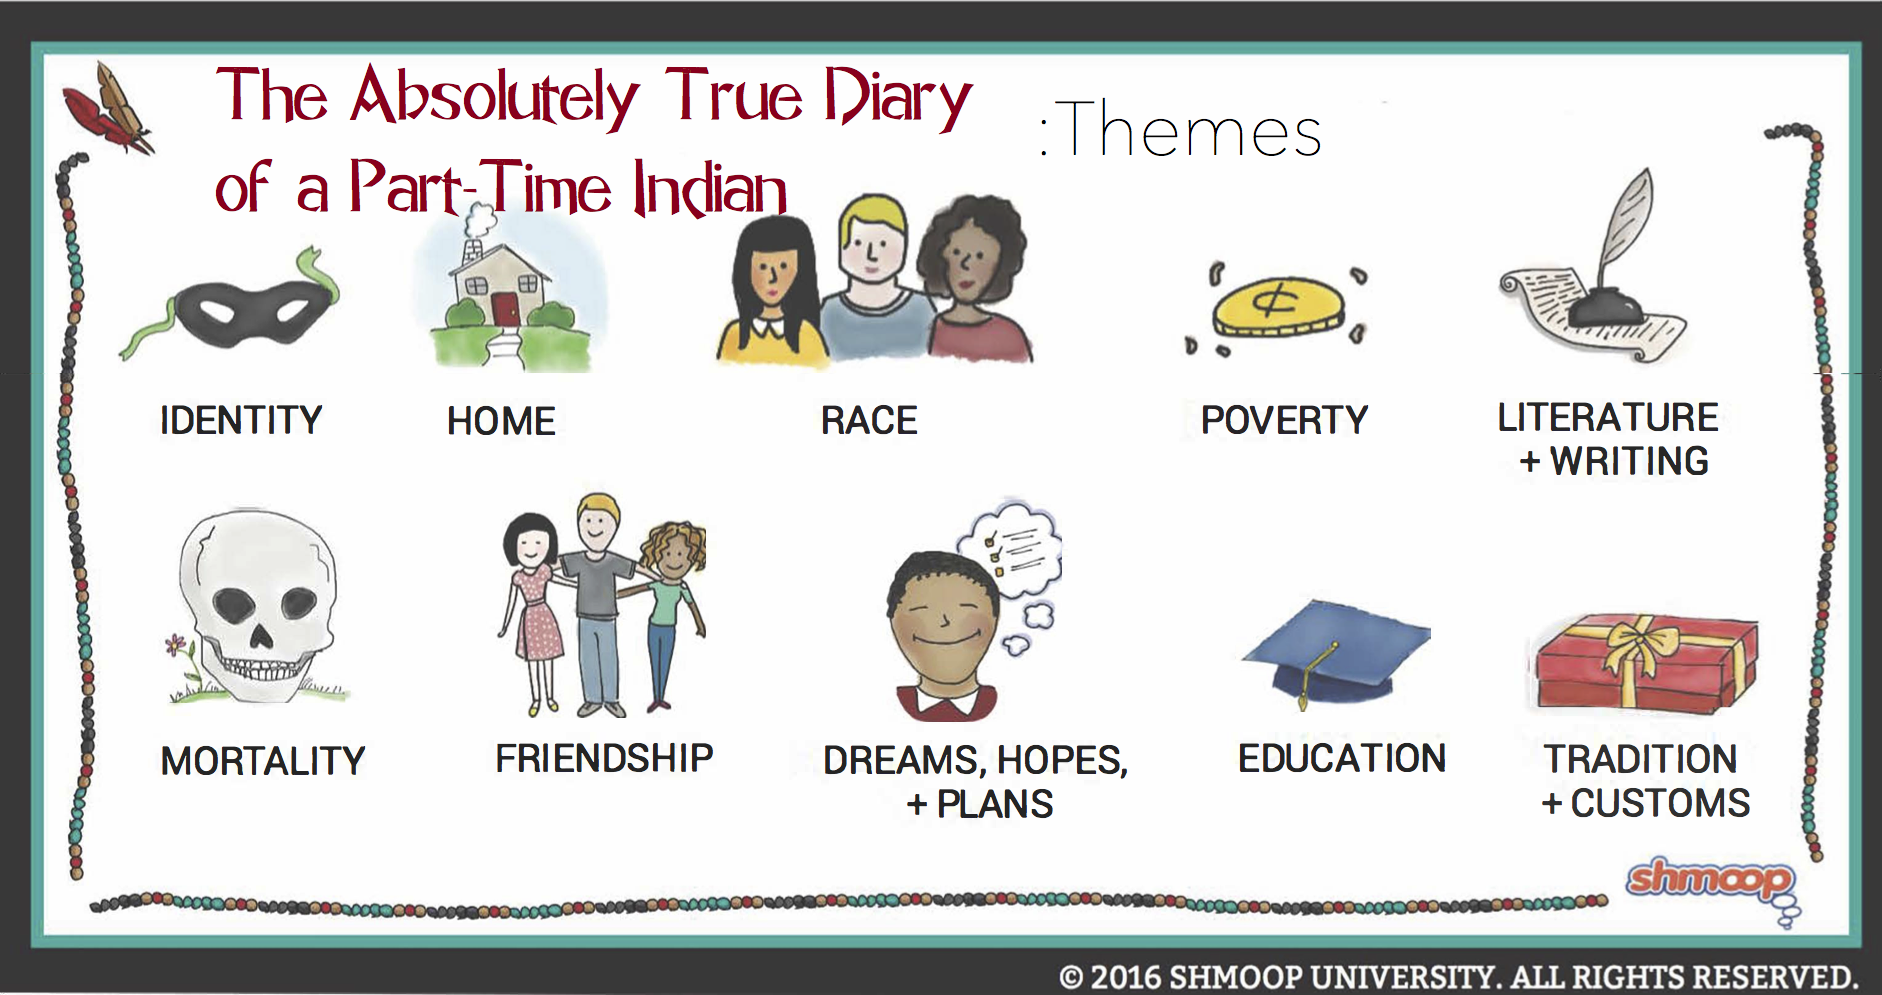 poverty and time indian junior The absolutely true diary of a part-time indian is a very enjoyable and authentic  cartoons has a thematic link to the poverty experienced by junior and his.